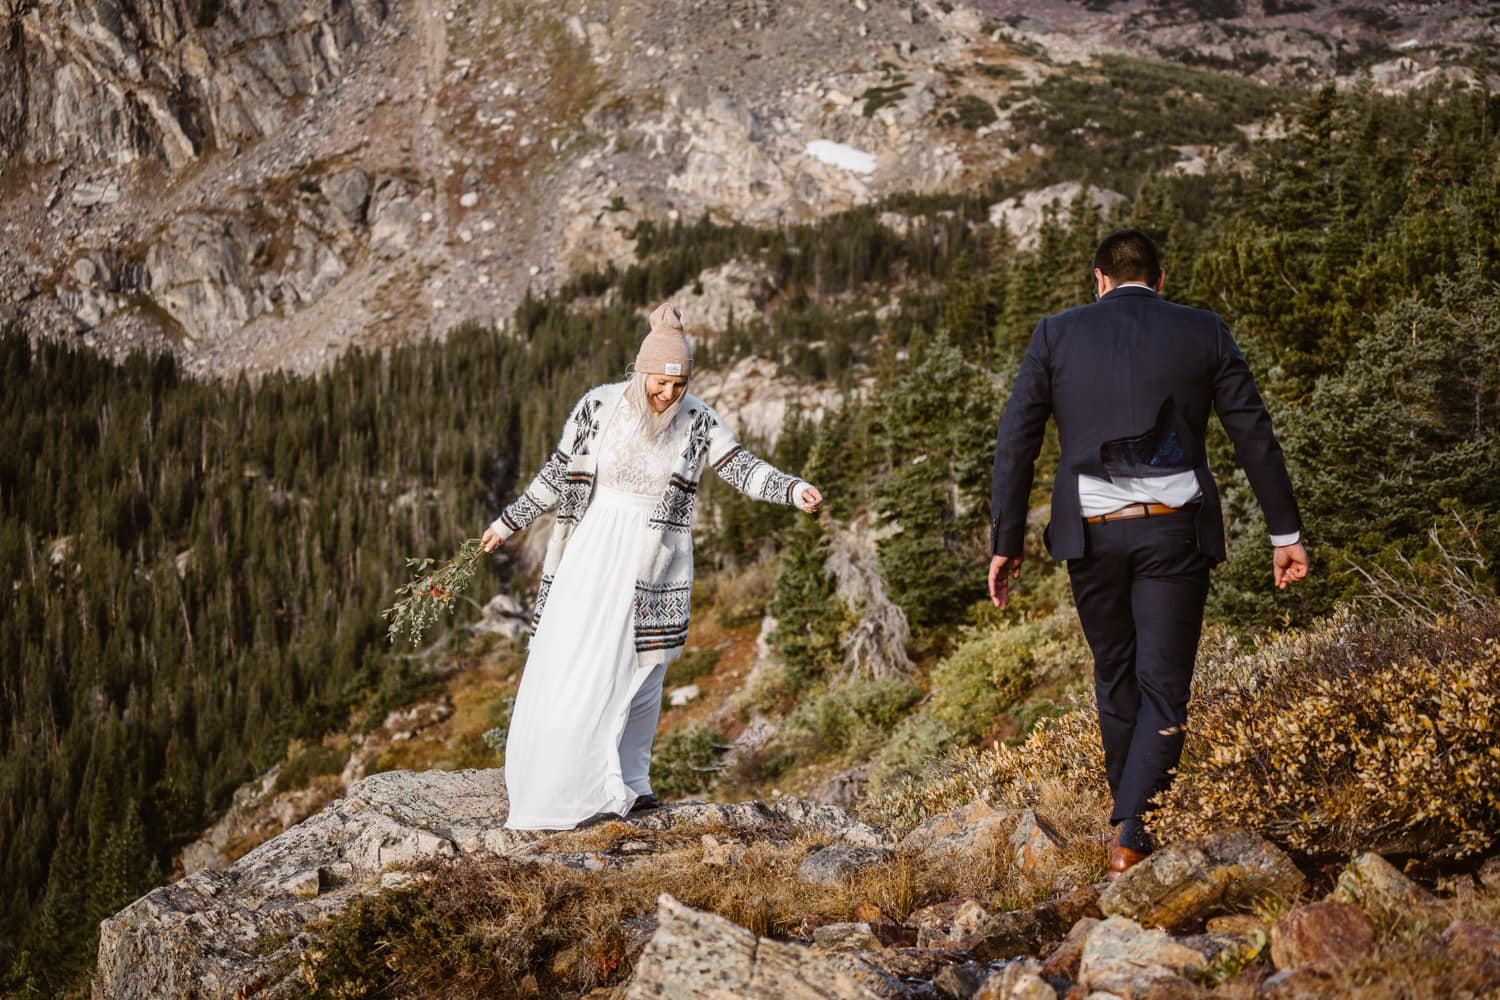 Bride and Groom Hiking at Self Solemnizing Elopement near Boulder, Colorado